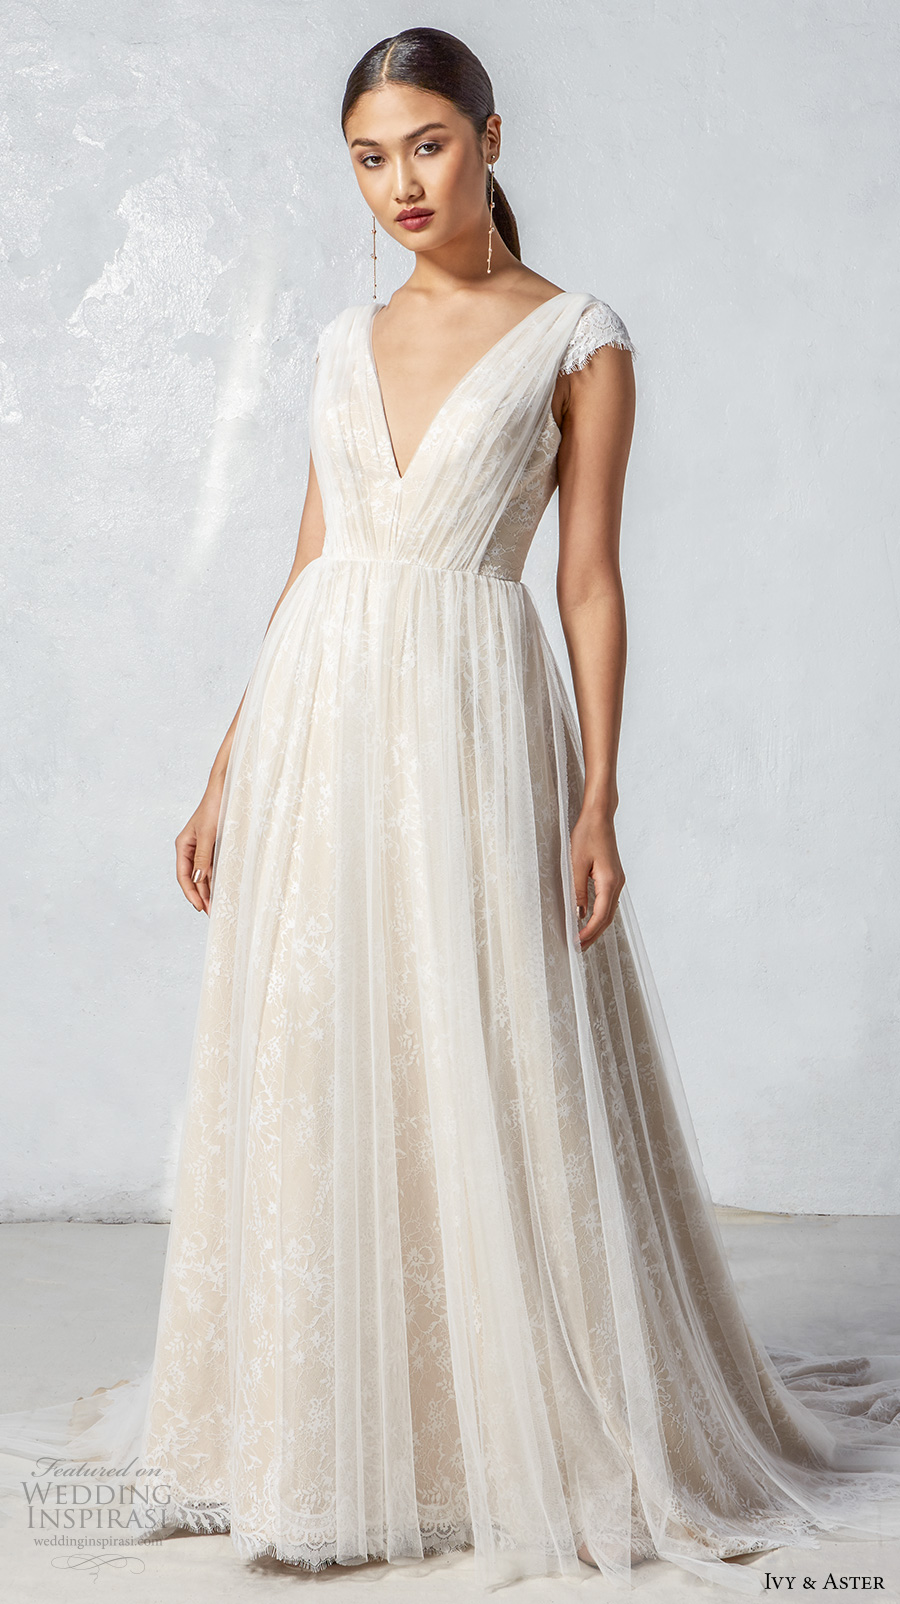 ivy aster fall 2017 bridal cap sleeves  v neck ruched bodice ruched skirt romantic ivory color a  line wedding dress open v back chapel train  (audra) mv